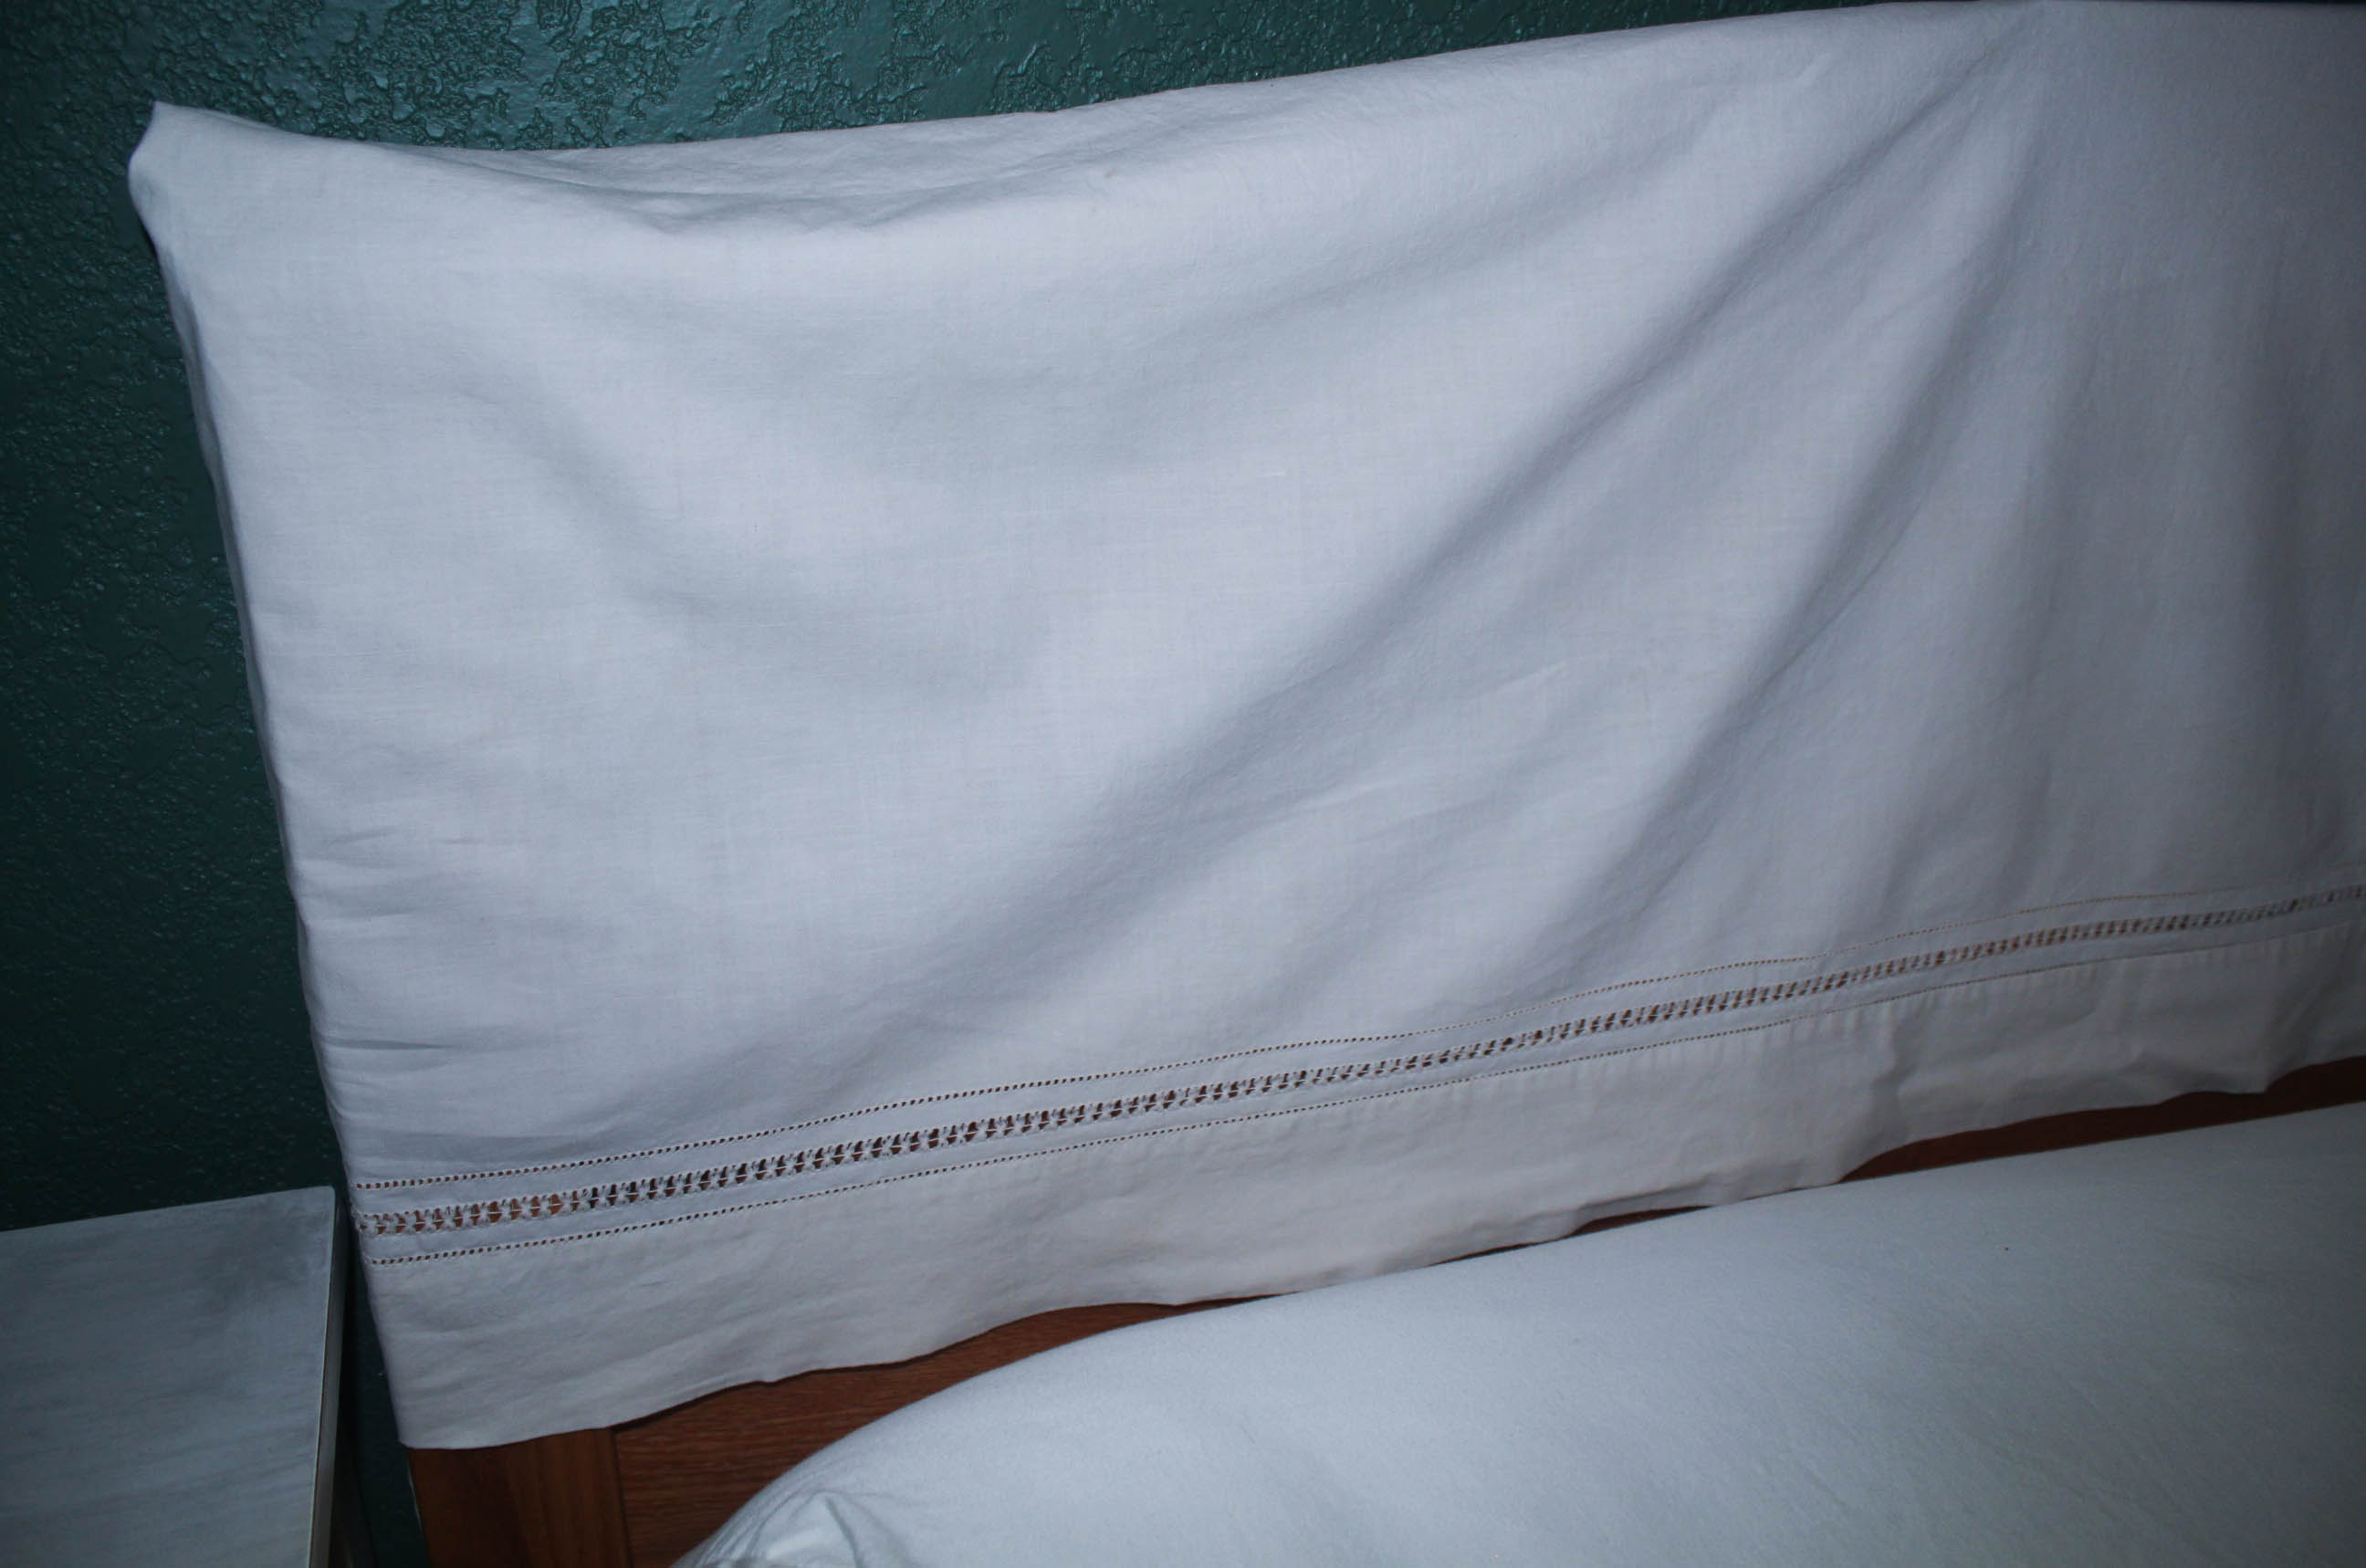 Slipcovers - Hiding a Wood Headboard